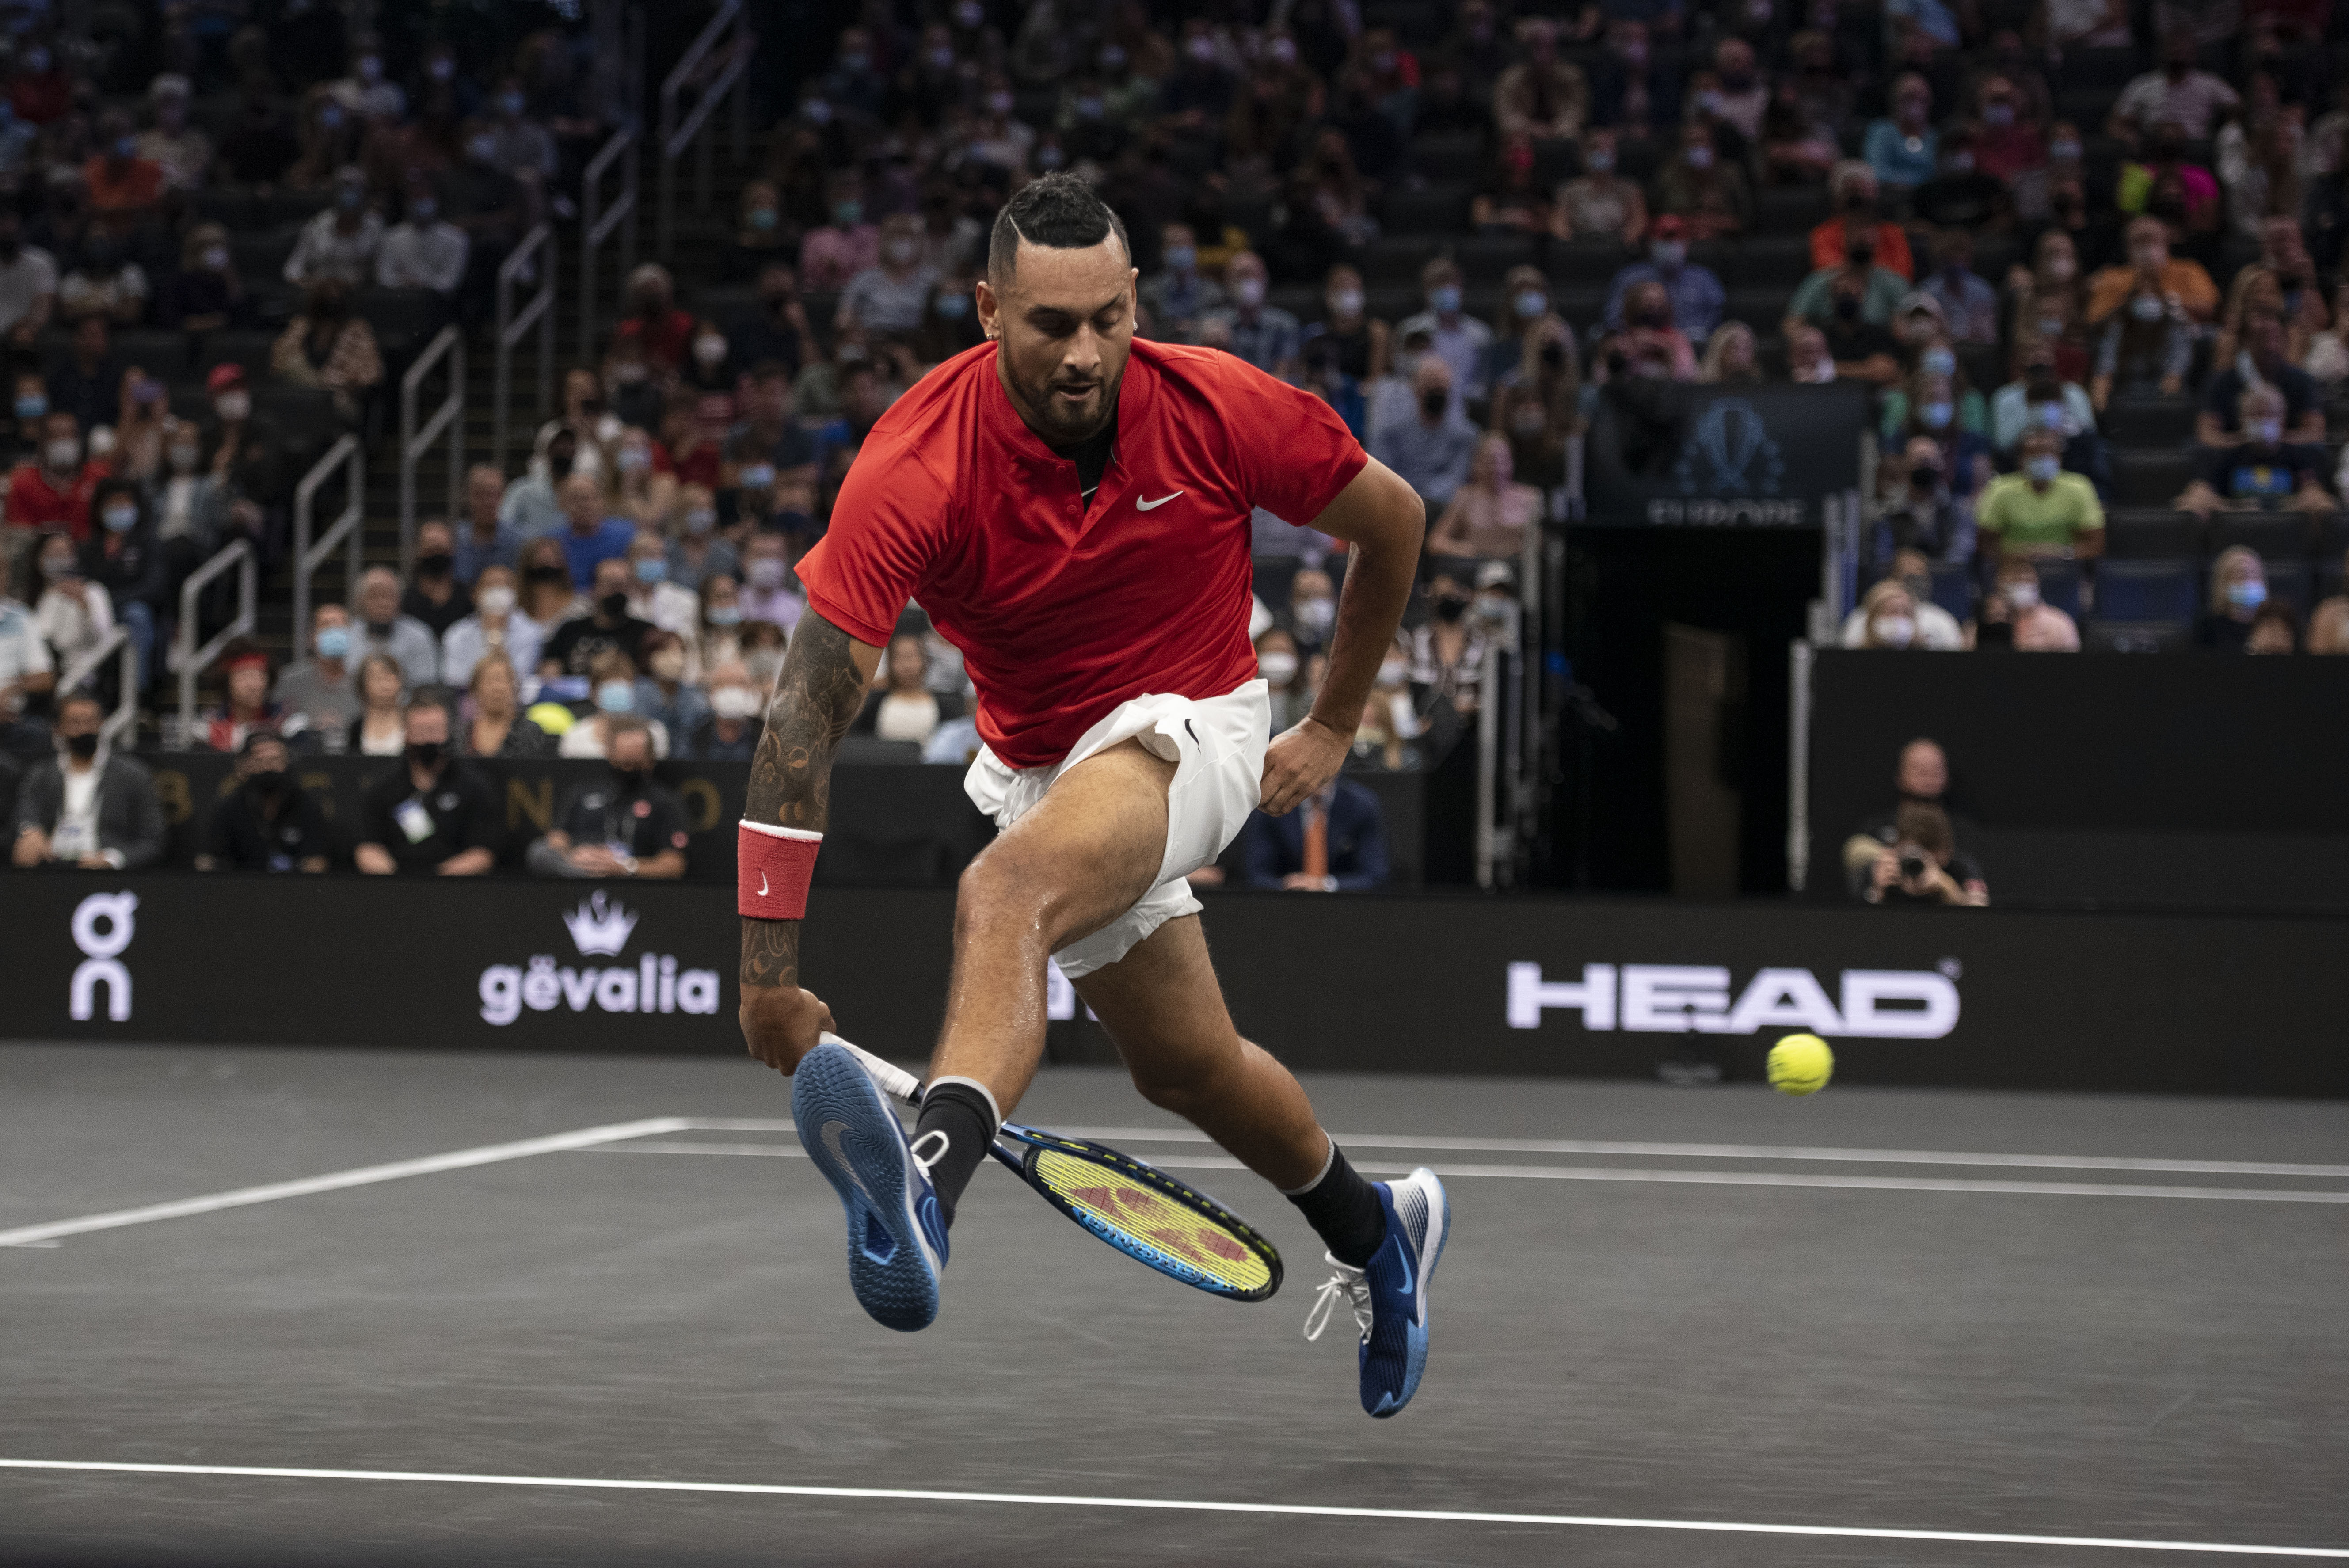 Sep 25, 2021; Boston, MA, USA;  Team World player Nick Kyrgios attempts a shot between his legs during the first set of his match against Team Europe player Stefanos Tsitsipas at TD Garden. Mandatory Credit: Richard Cashin-USA TODAY Sports/File Photo